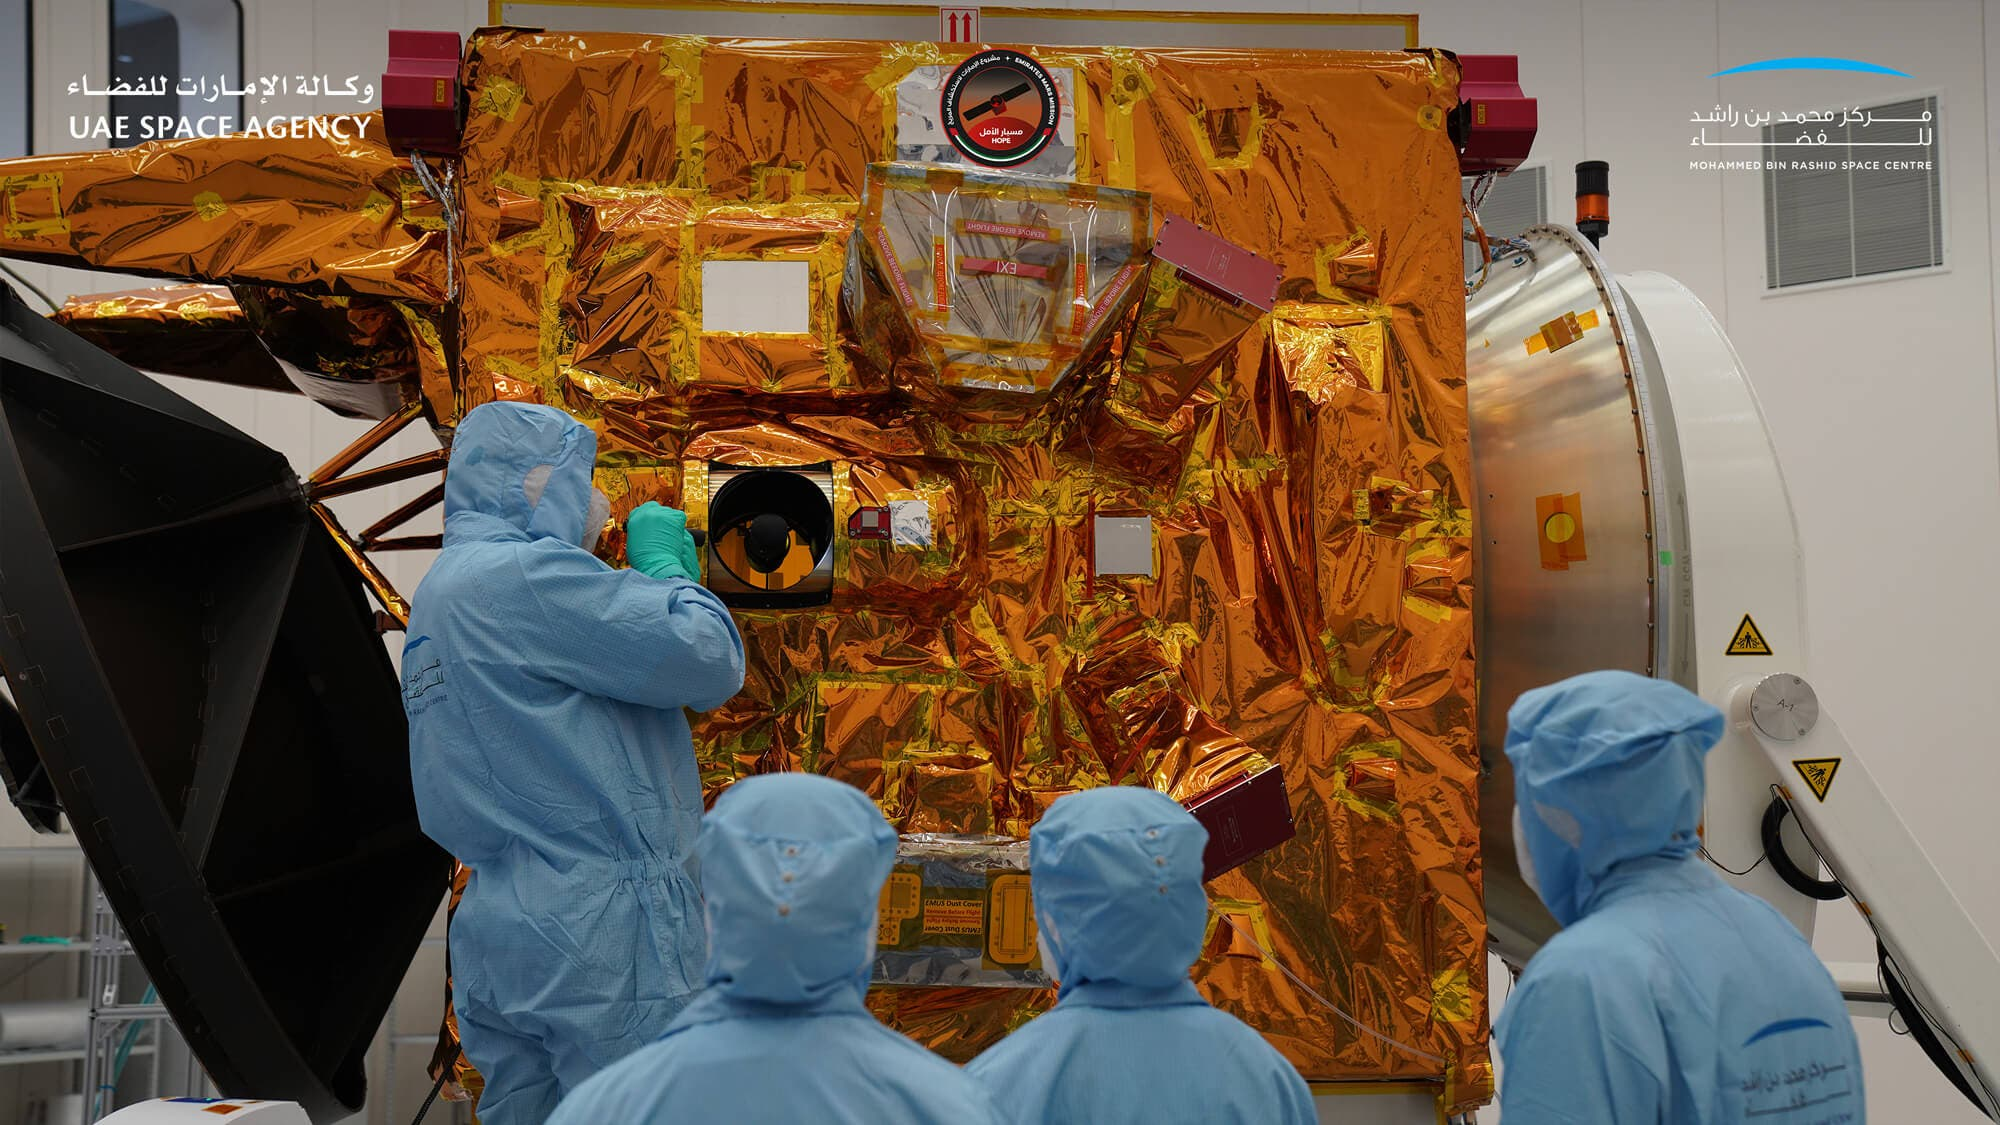 Scientists inspect the Emirates Mars Mission Hope Probe. (UAE Space Agency and Mohammed bin Rashid Space Centre)